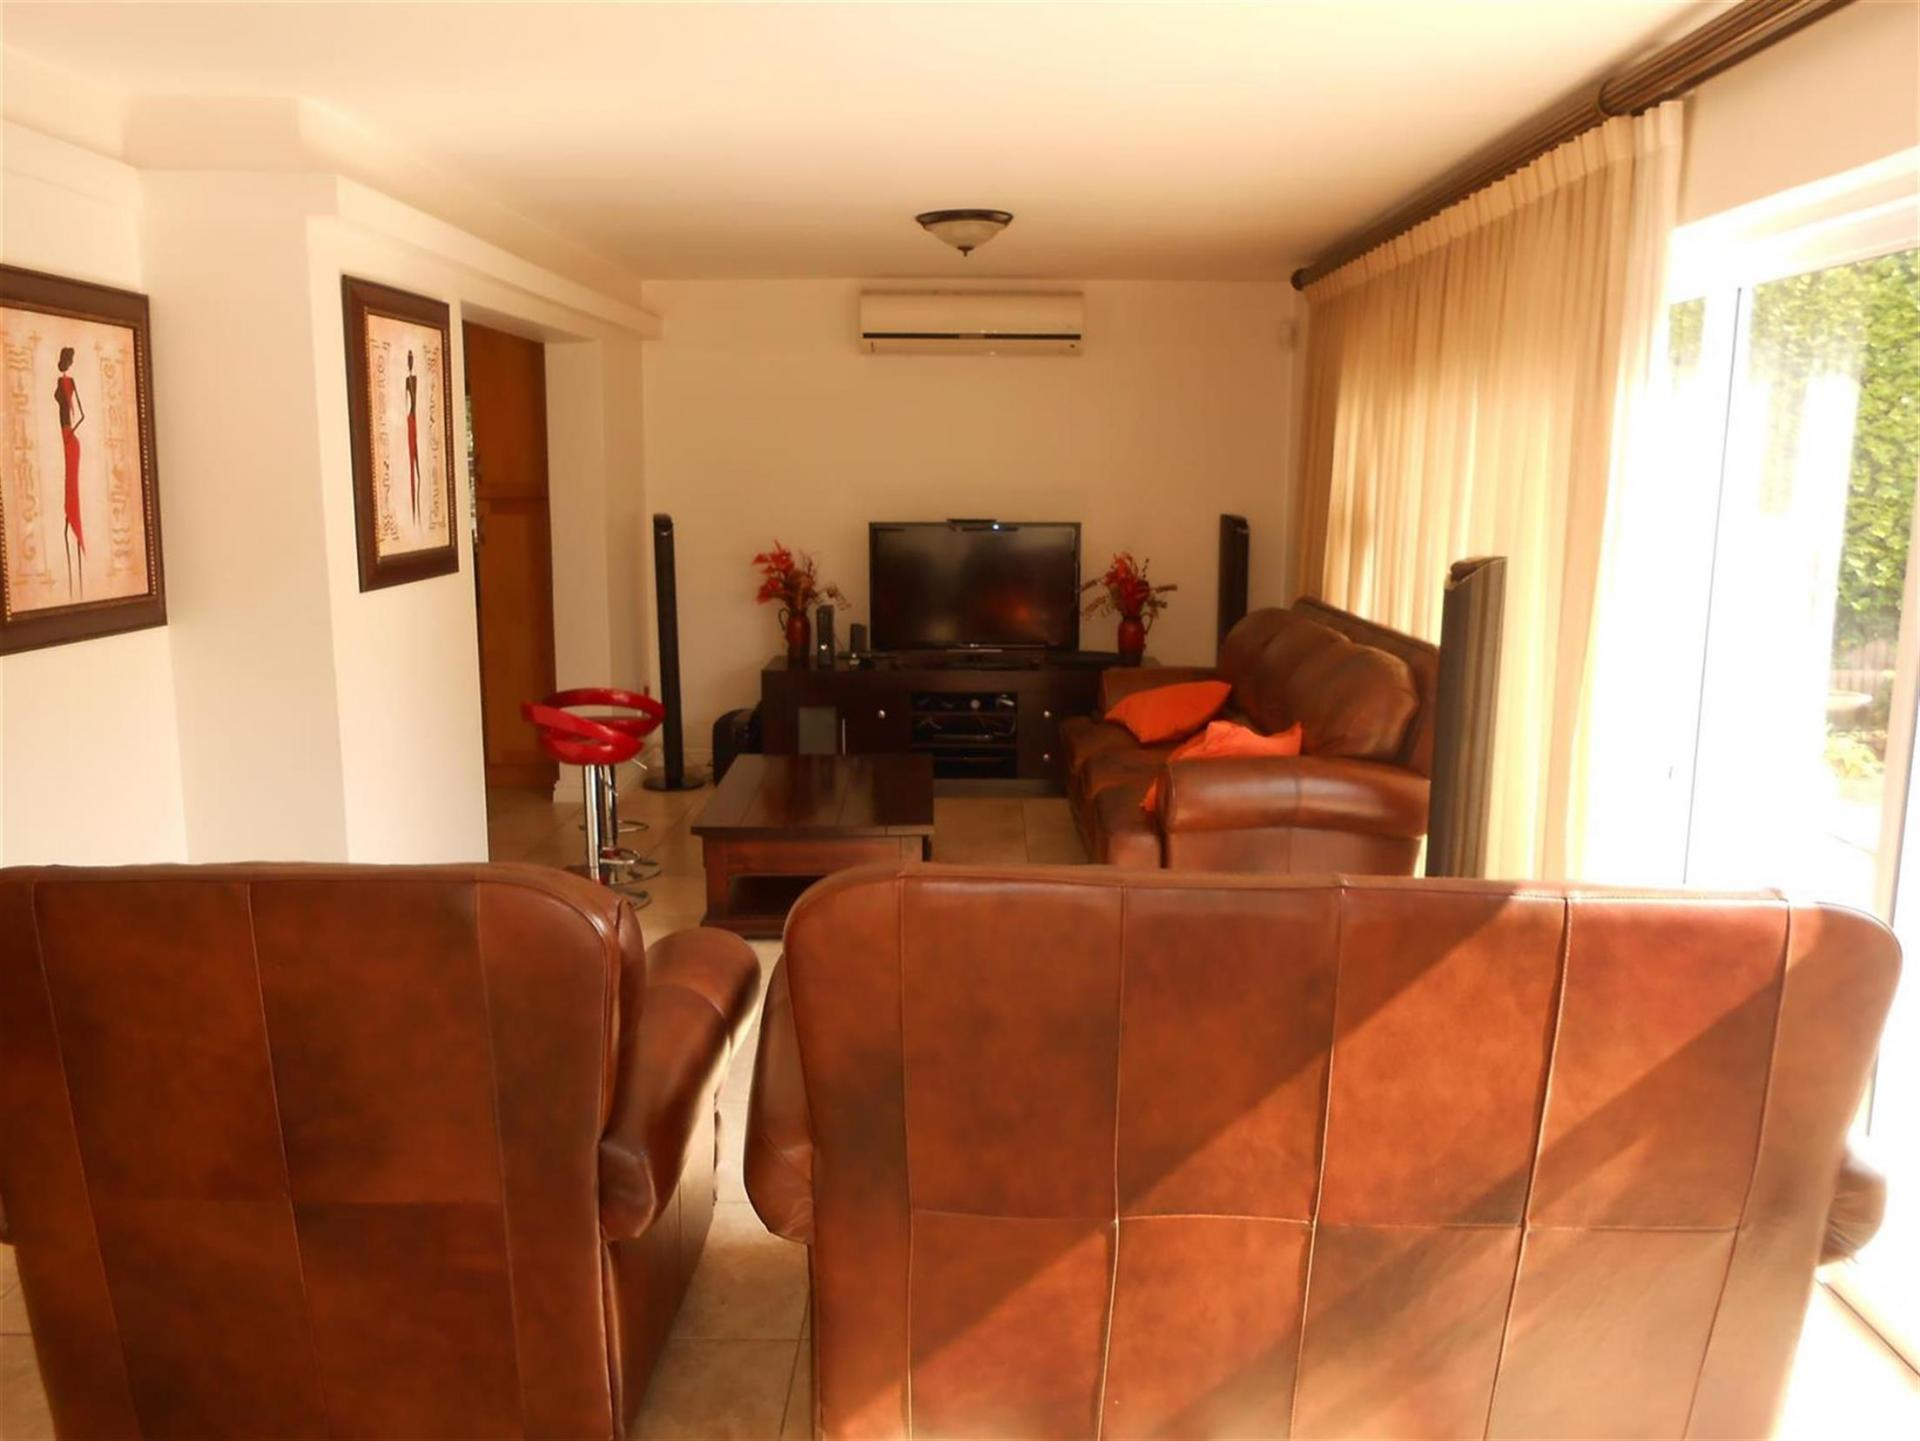 4 Bedroom Sectional Title For Sale And To Rent For Sale In